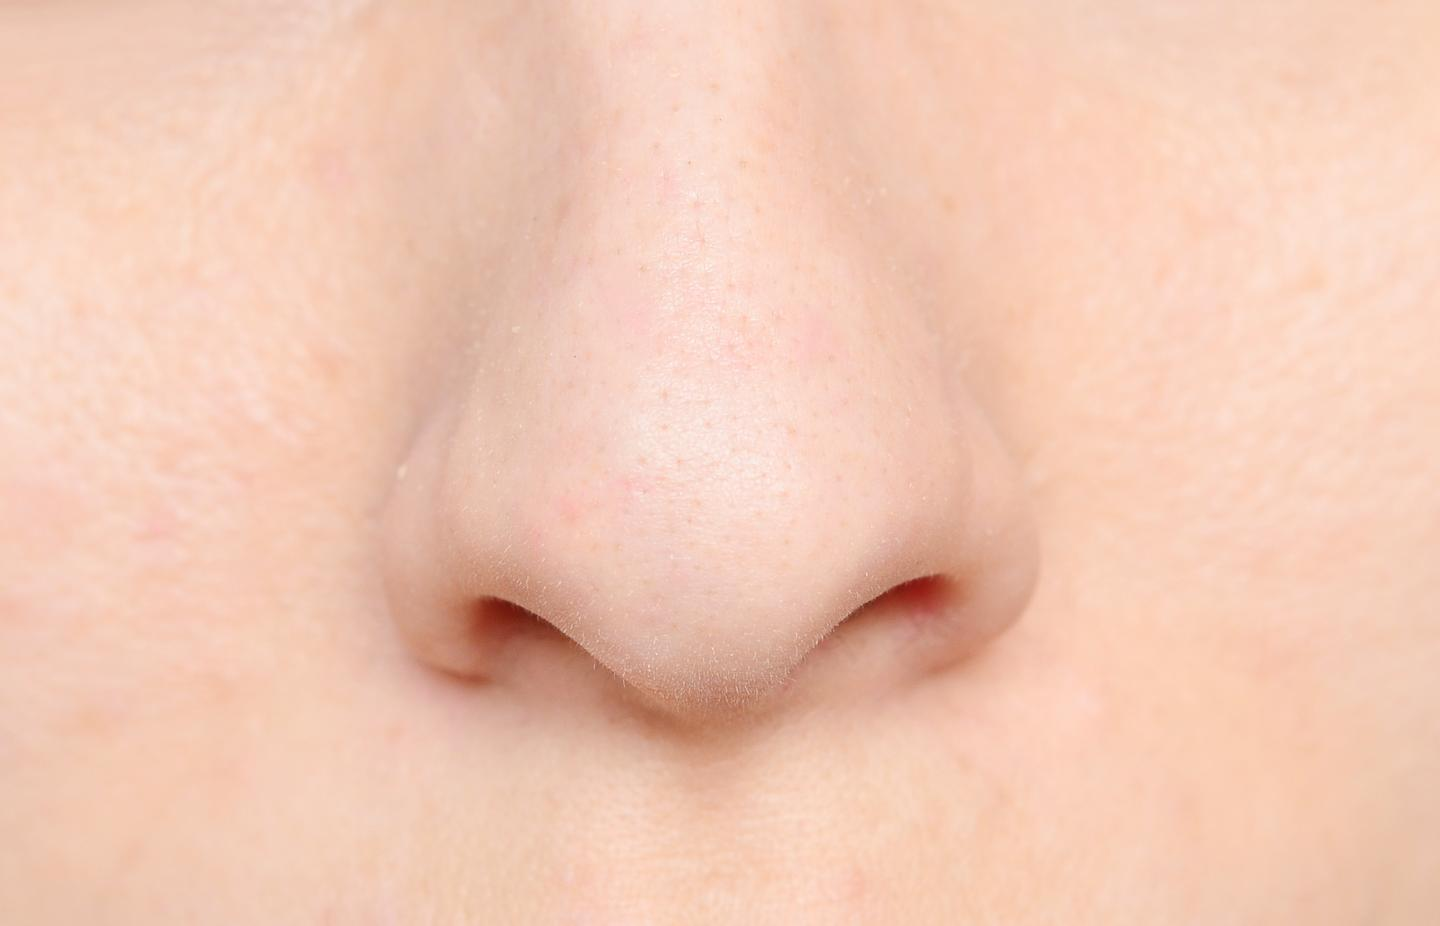 Nasal septum cartilage cells can easily be coaxed into reproducing, providing a patient with their own source of replacement joint cartilage (Photo: Shutterstock)